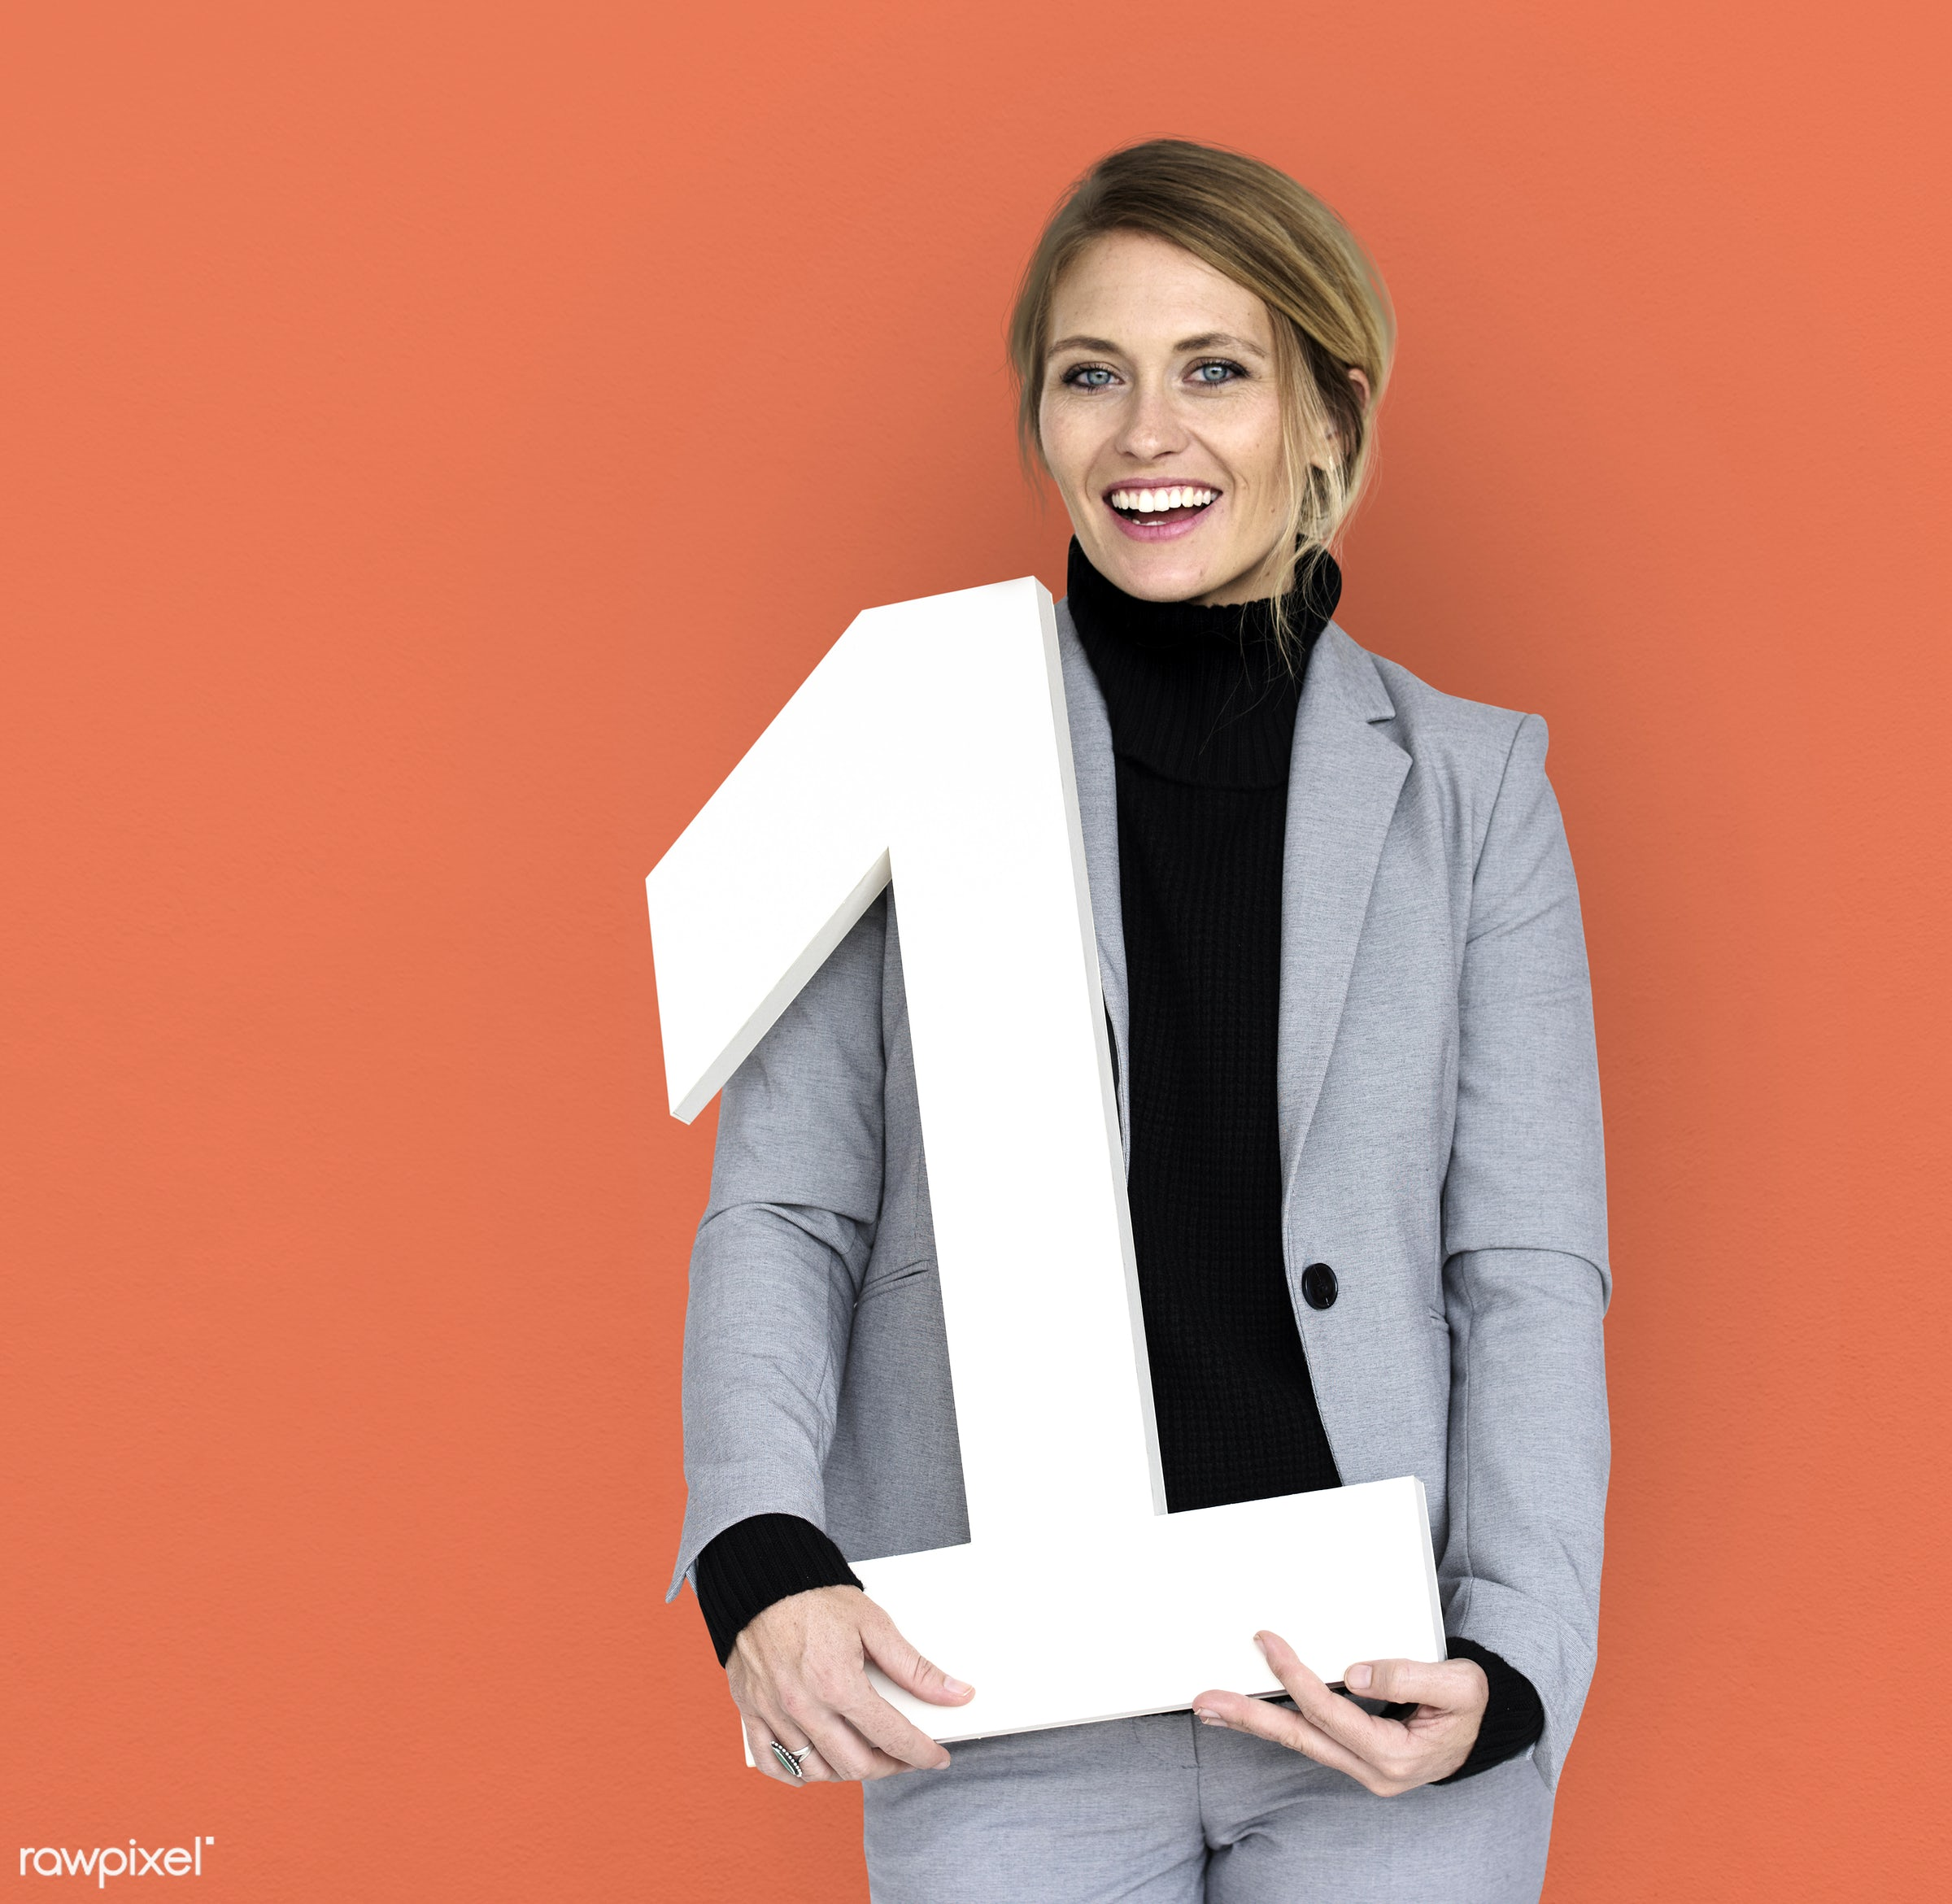 number one, achieve, background, blonde, business attire, business wear, business woman, cheerful, expression, female,...